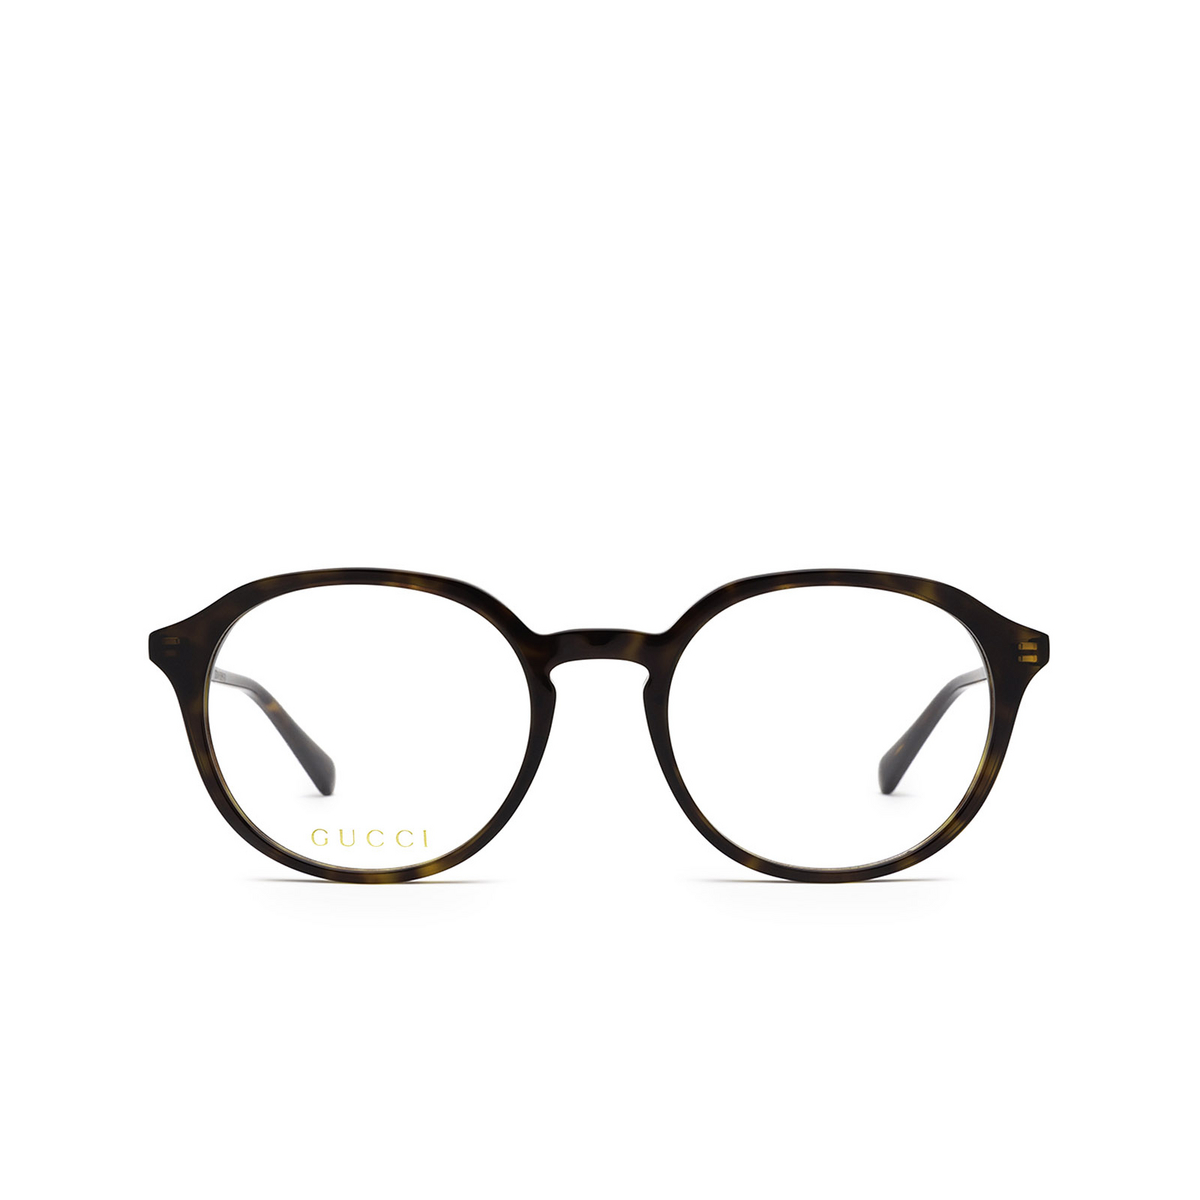 Gucci® Round Eyeglasses: GG1004O color Havana 002 - front view.